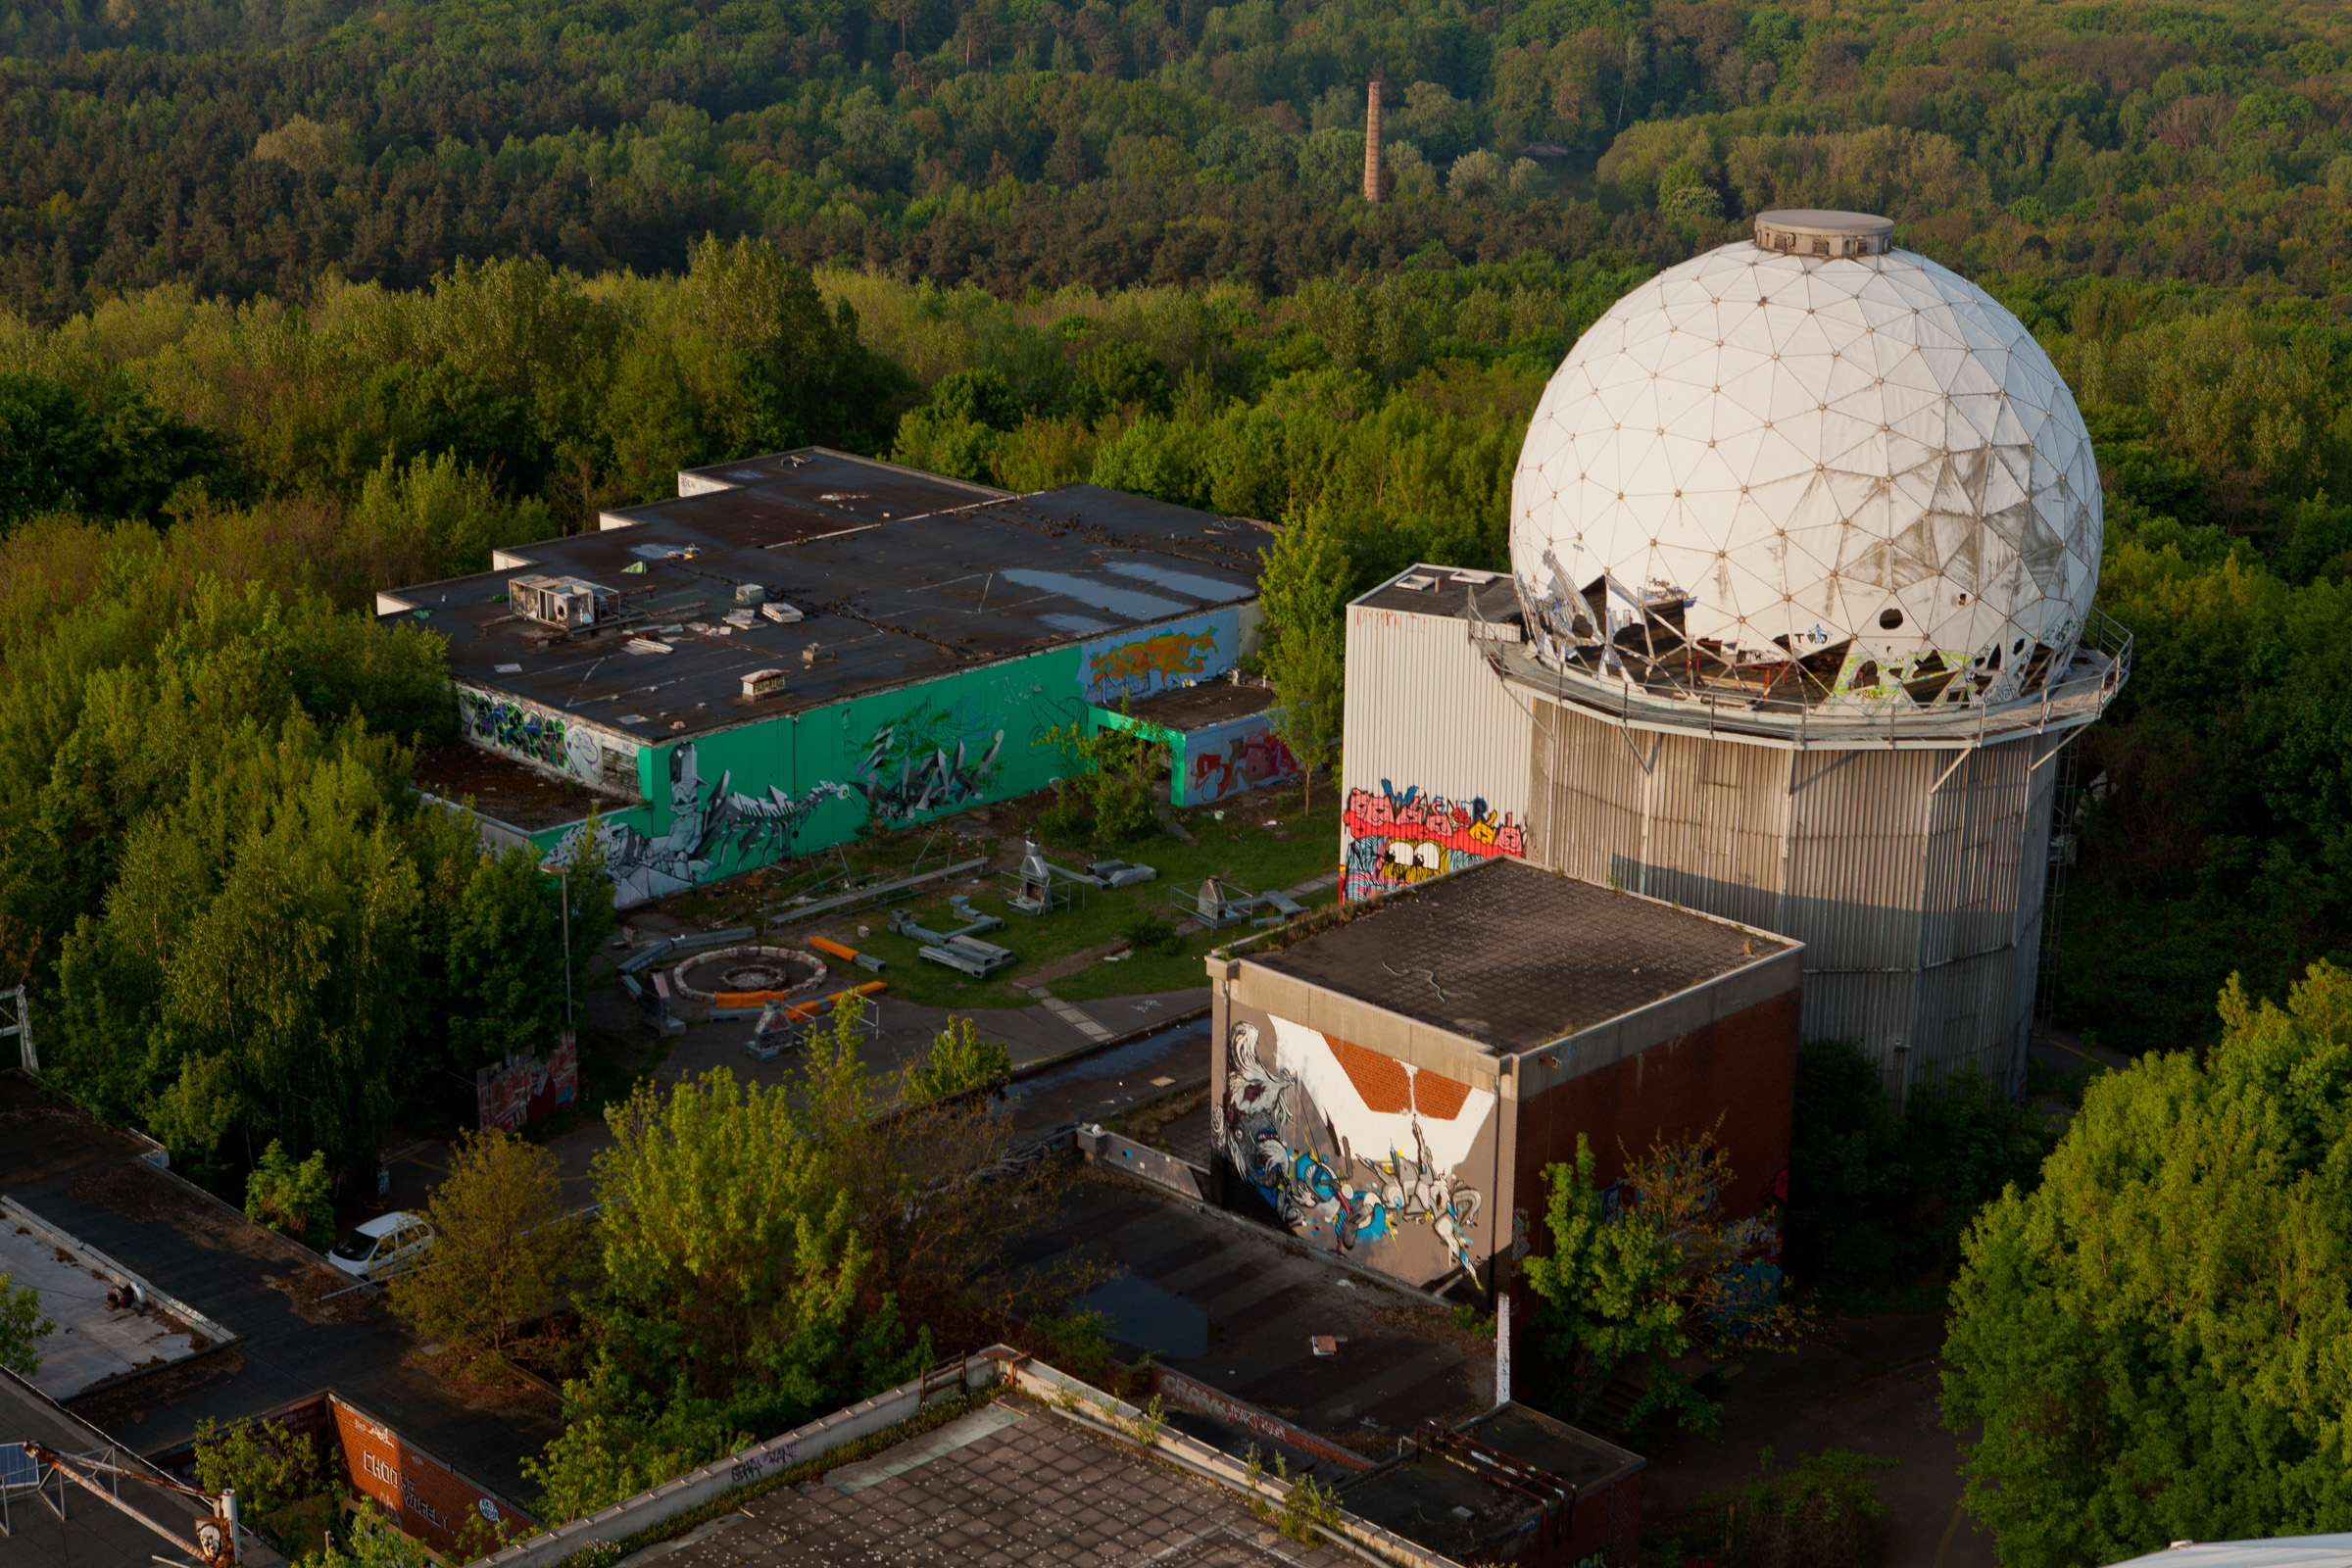 View of Teufelsberg